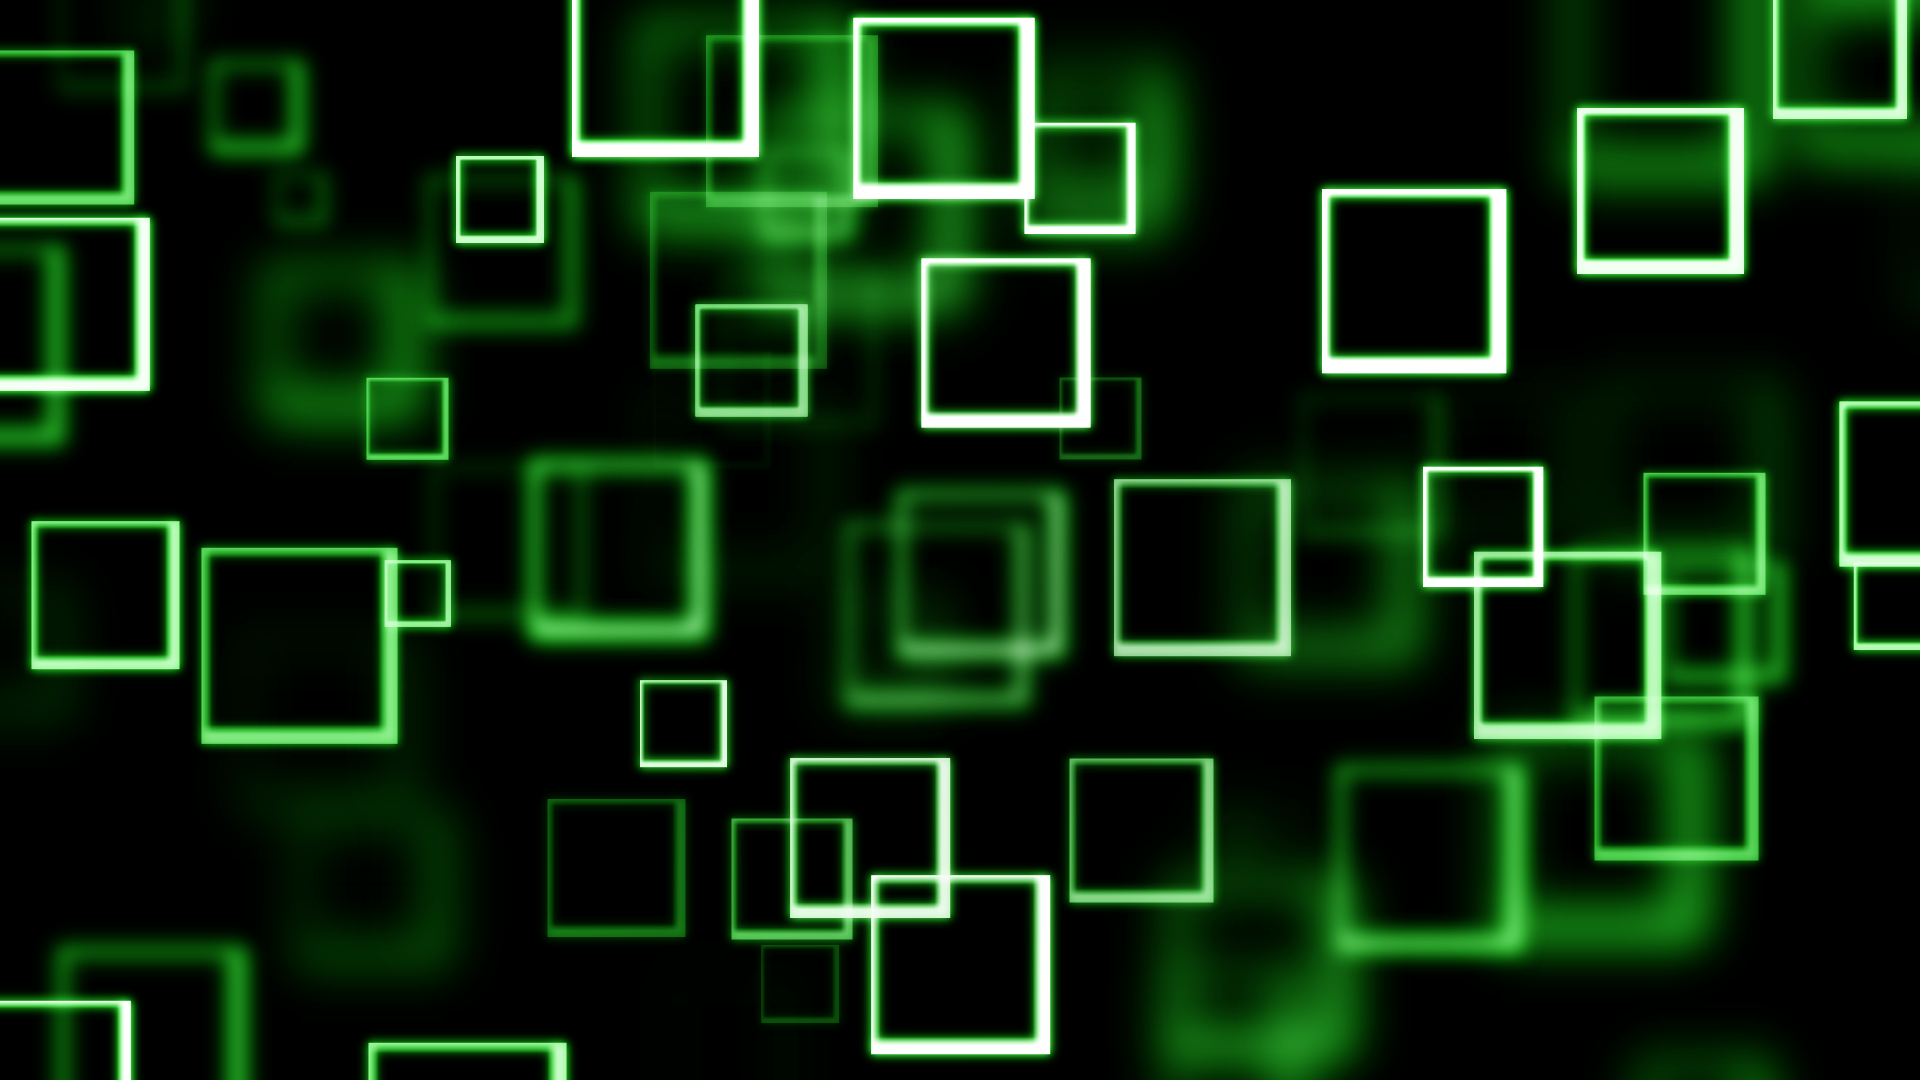 Green Bokeh SQUARES! by DefectiveDre on deviantART